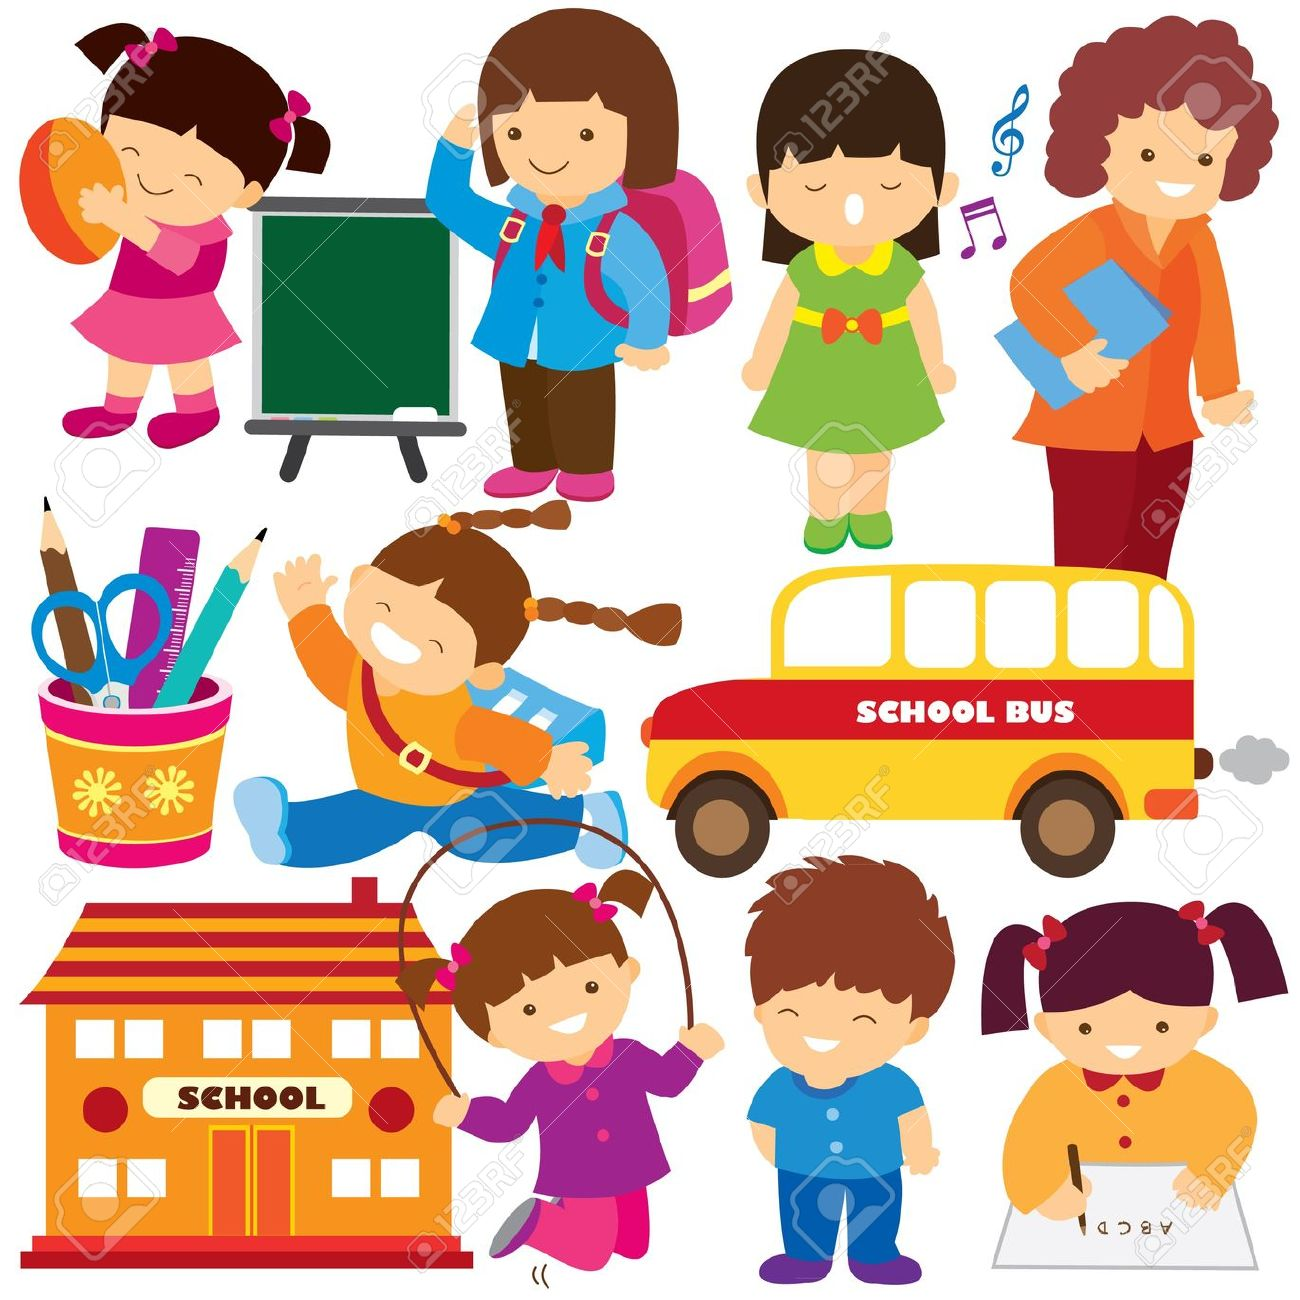 Activities clipart in school. Free student cliparts download